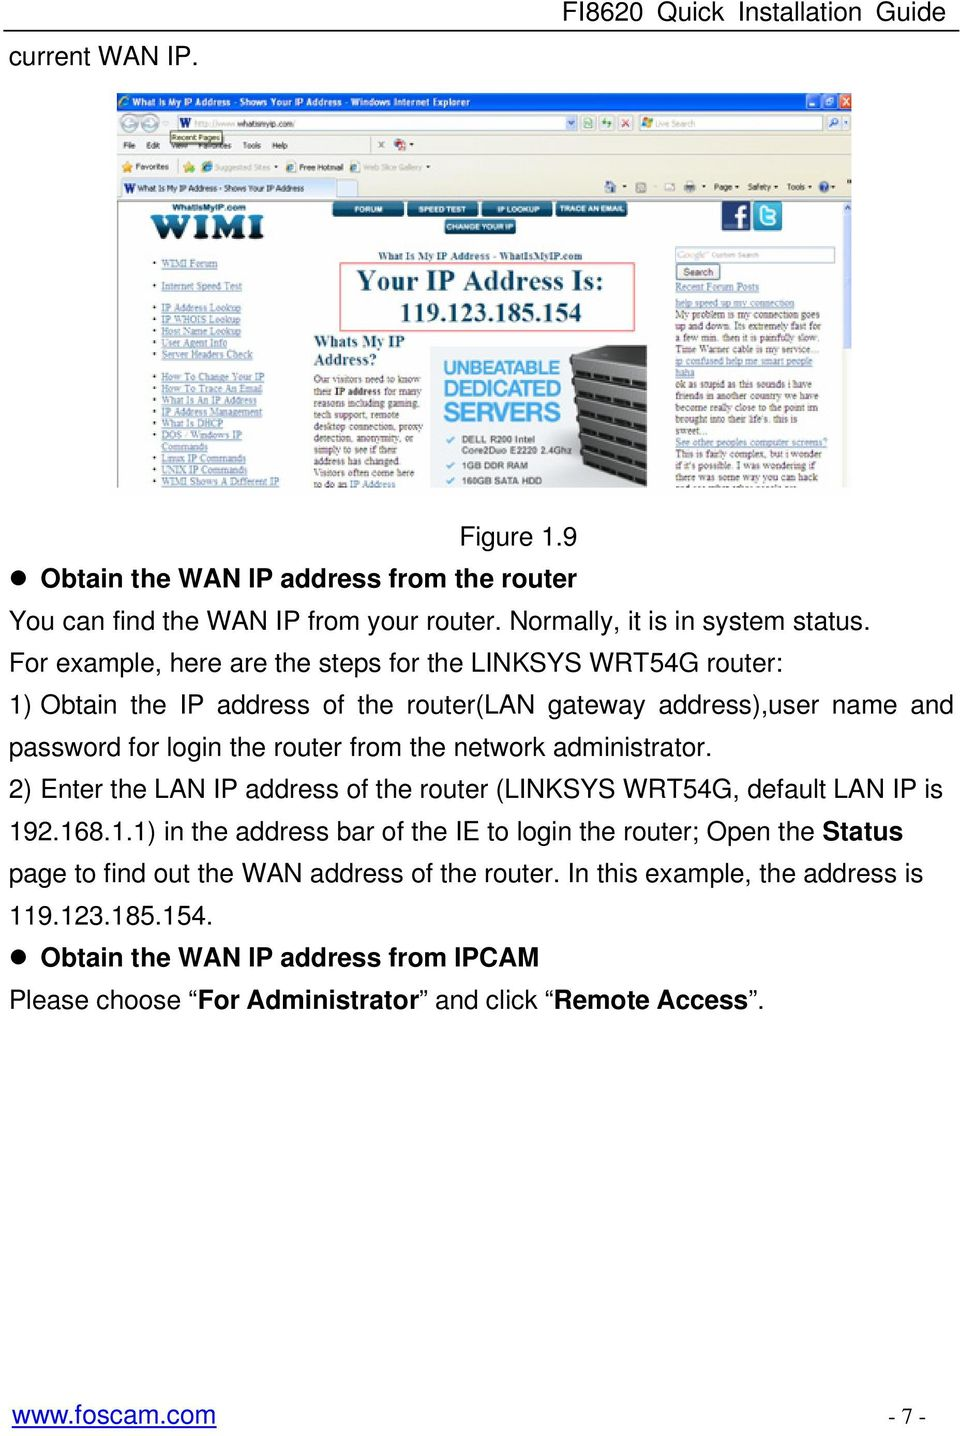 network administrator. 2) Enter the LAN IP address of the router (LINKSYS WRT54G, default LAN IP is 19